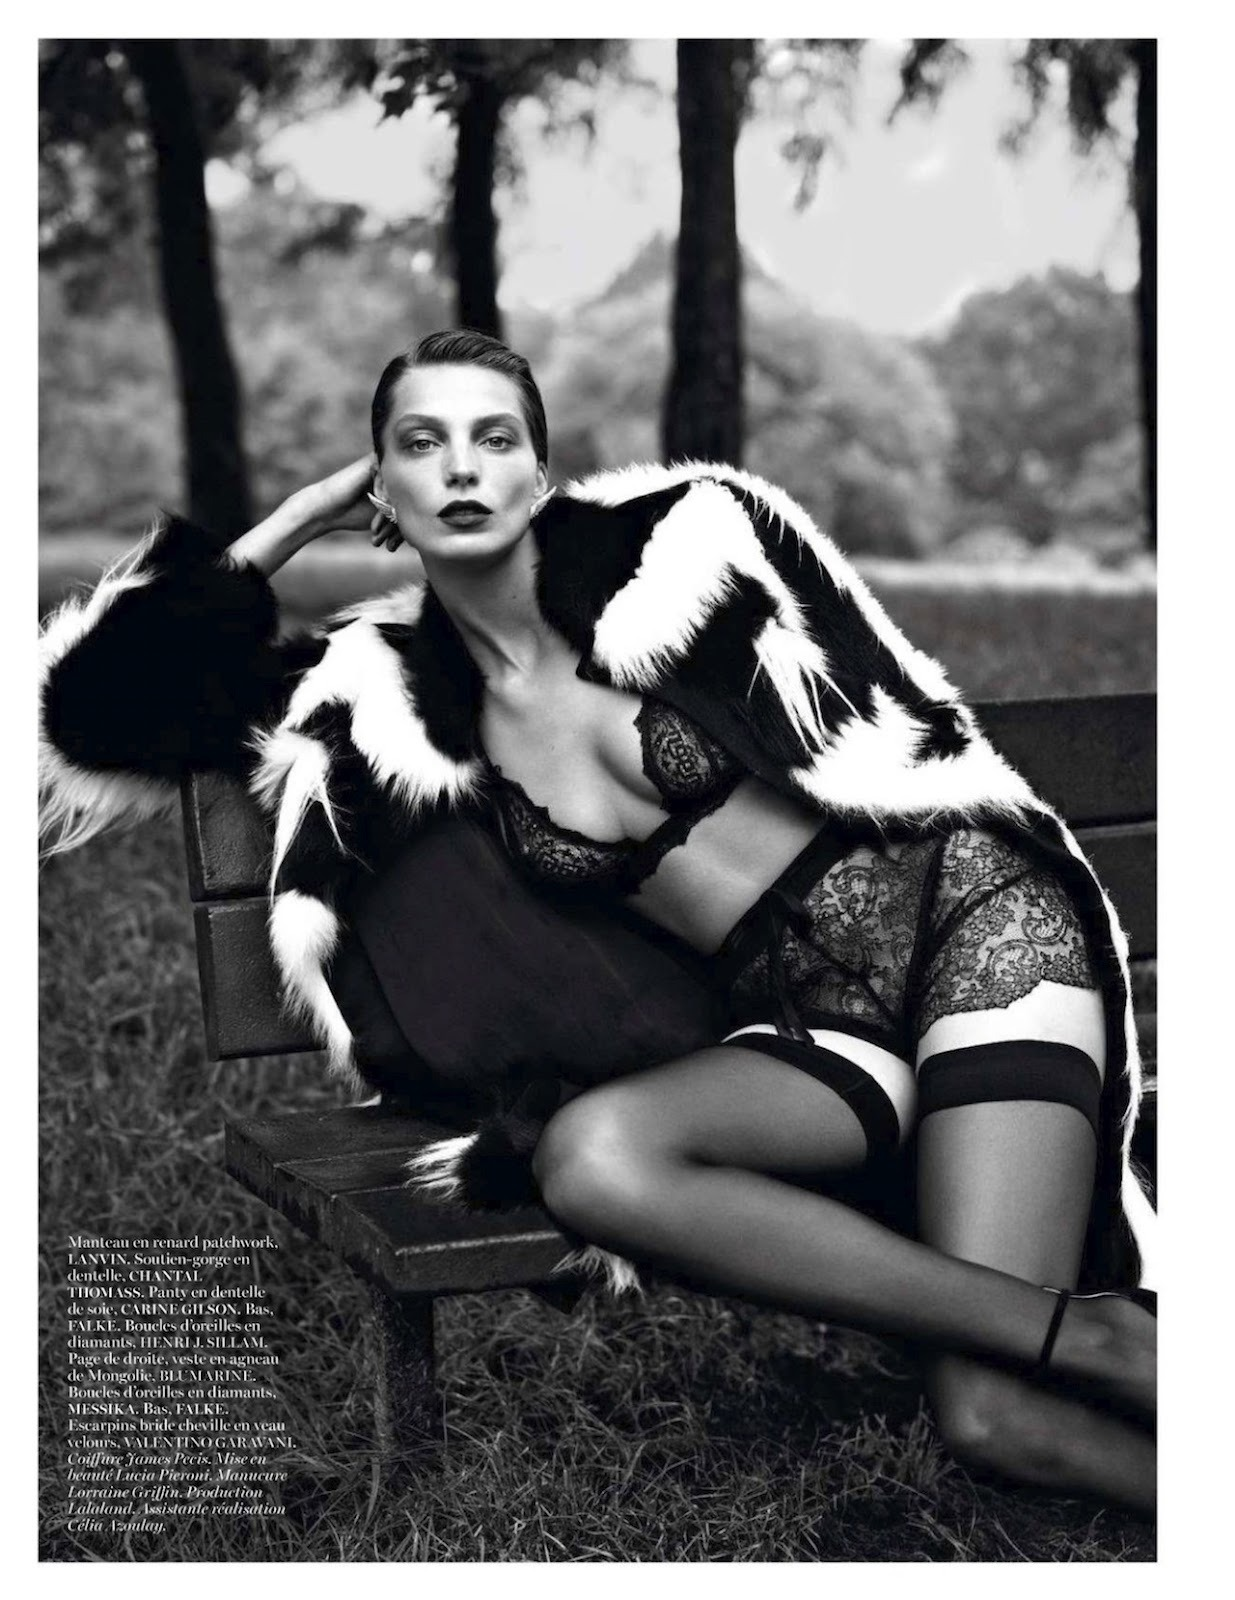 VOGUE Paris September 2012 Daria Werbowy by Mert Alas & Marcus Piggott